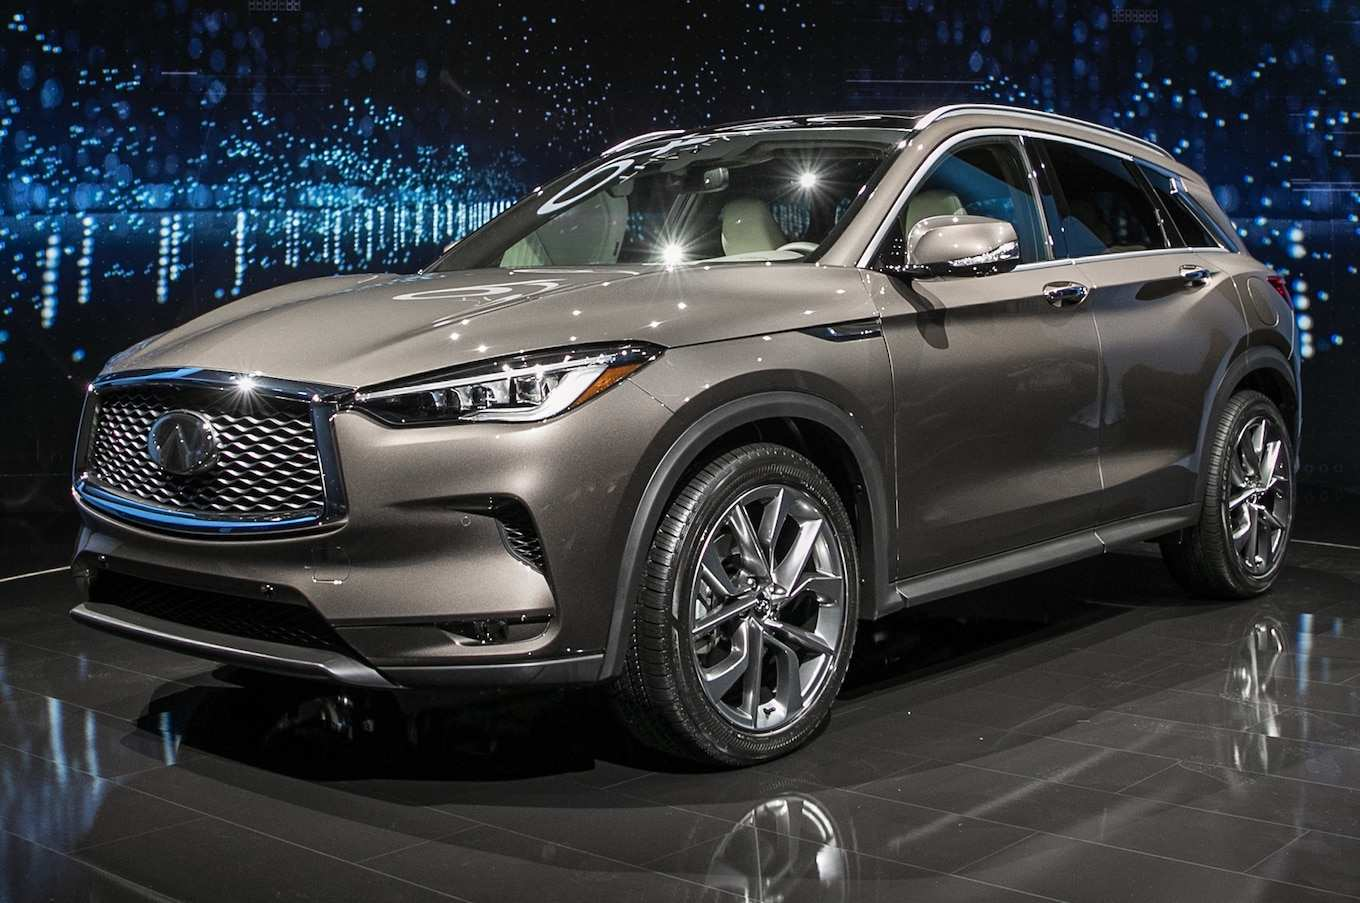 32 New 2019 Infiniti Crossover Research New with 2019 Infiniti Crossover